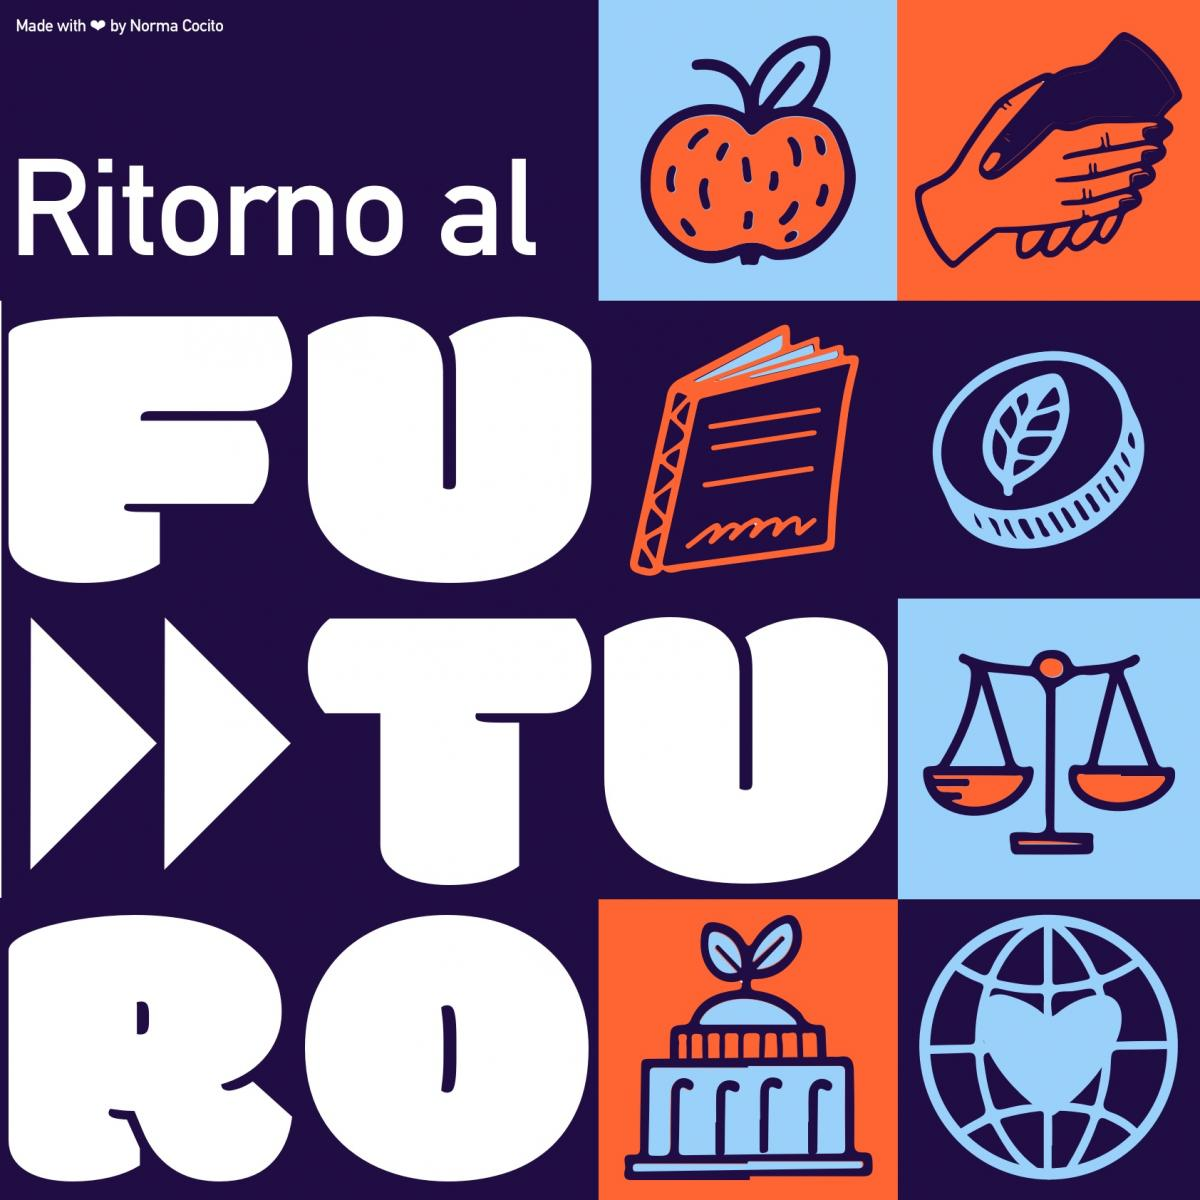 Climate Change Fridays for Future ritorno al futuro